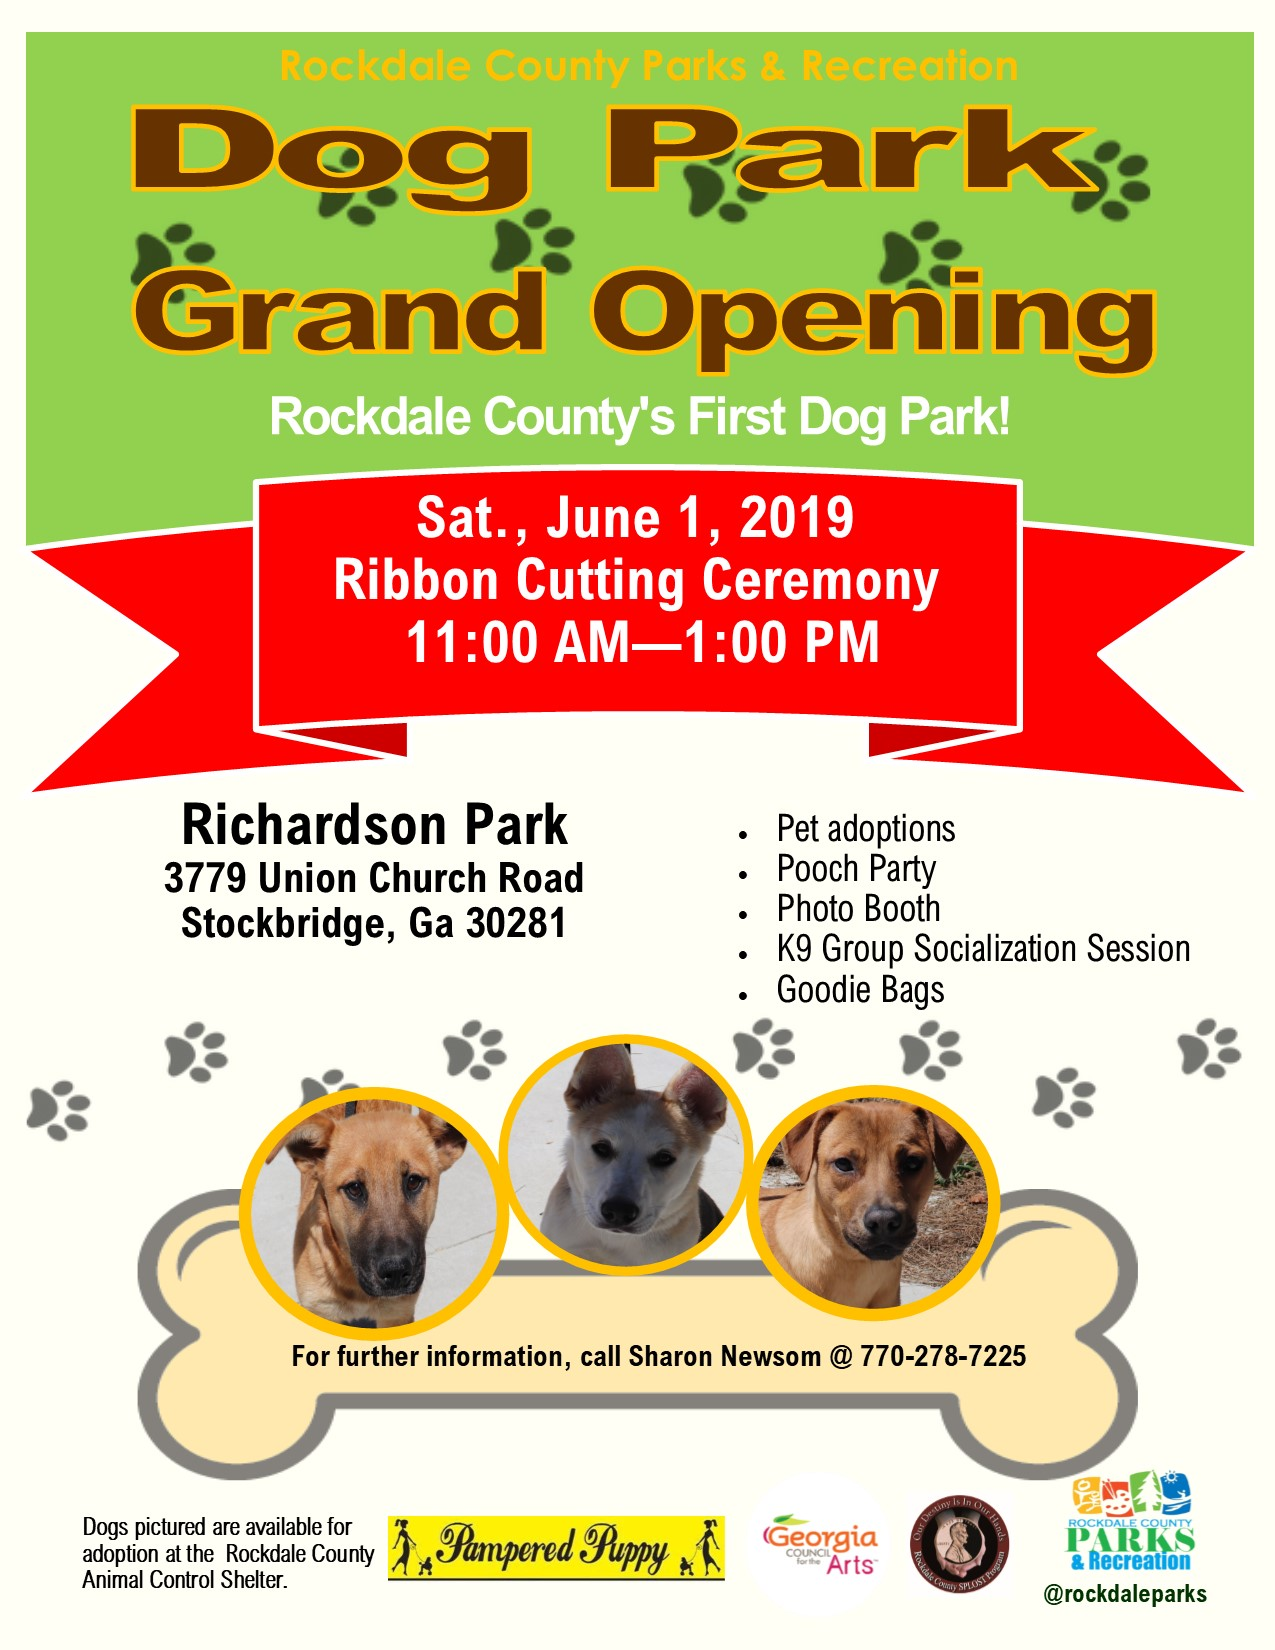 Dog Park Grand Opening @ Richardson Park